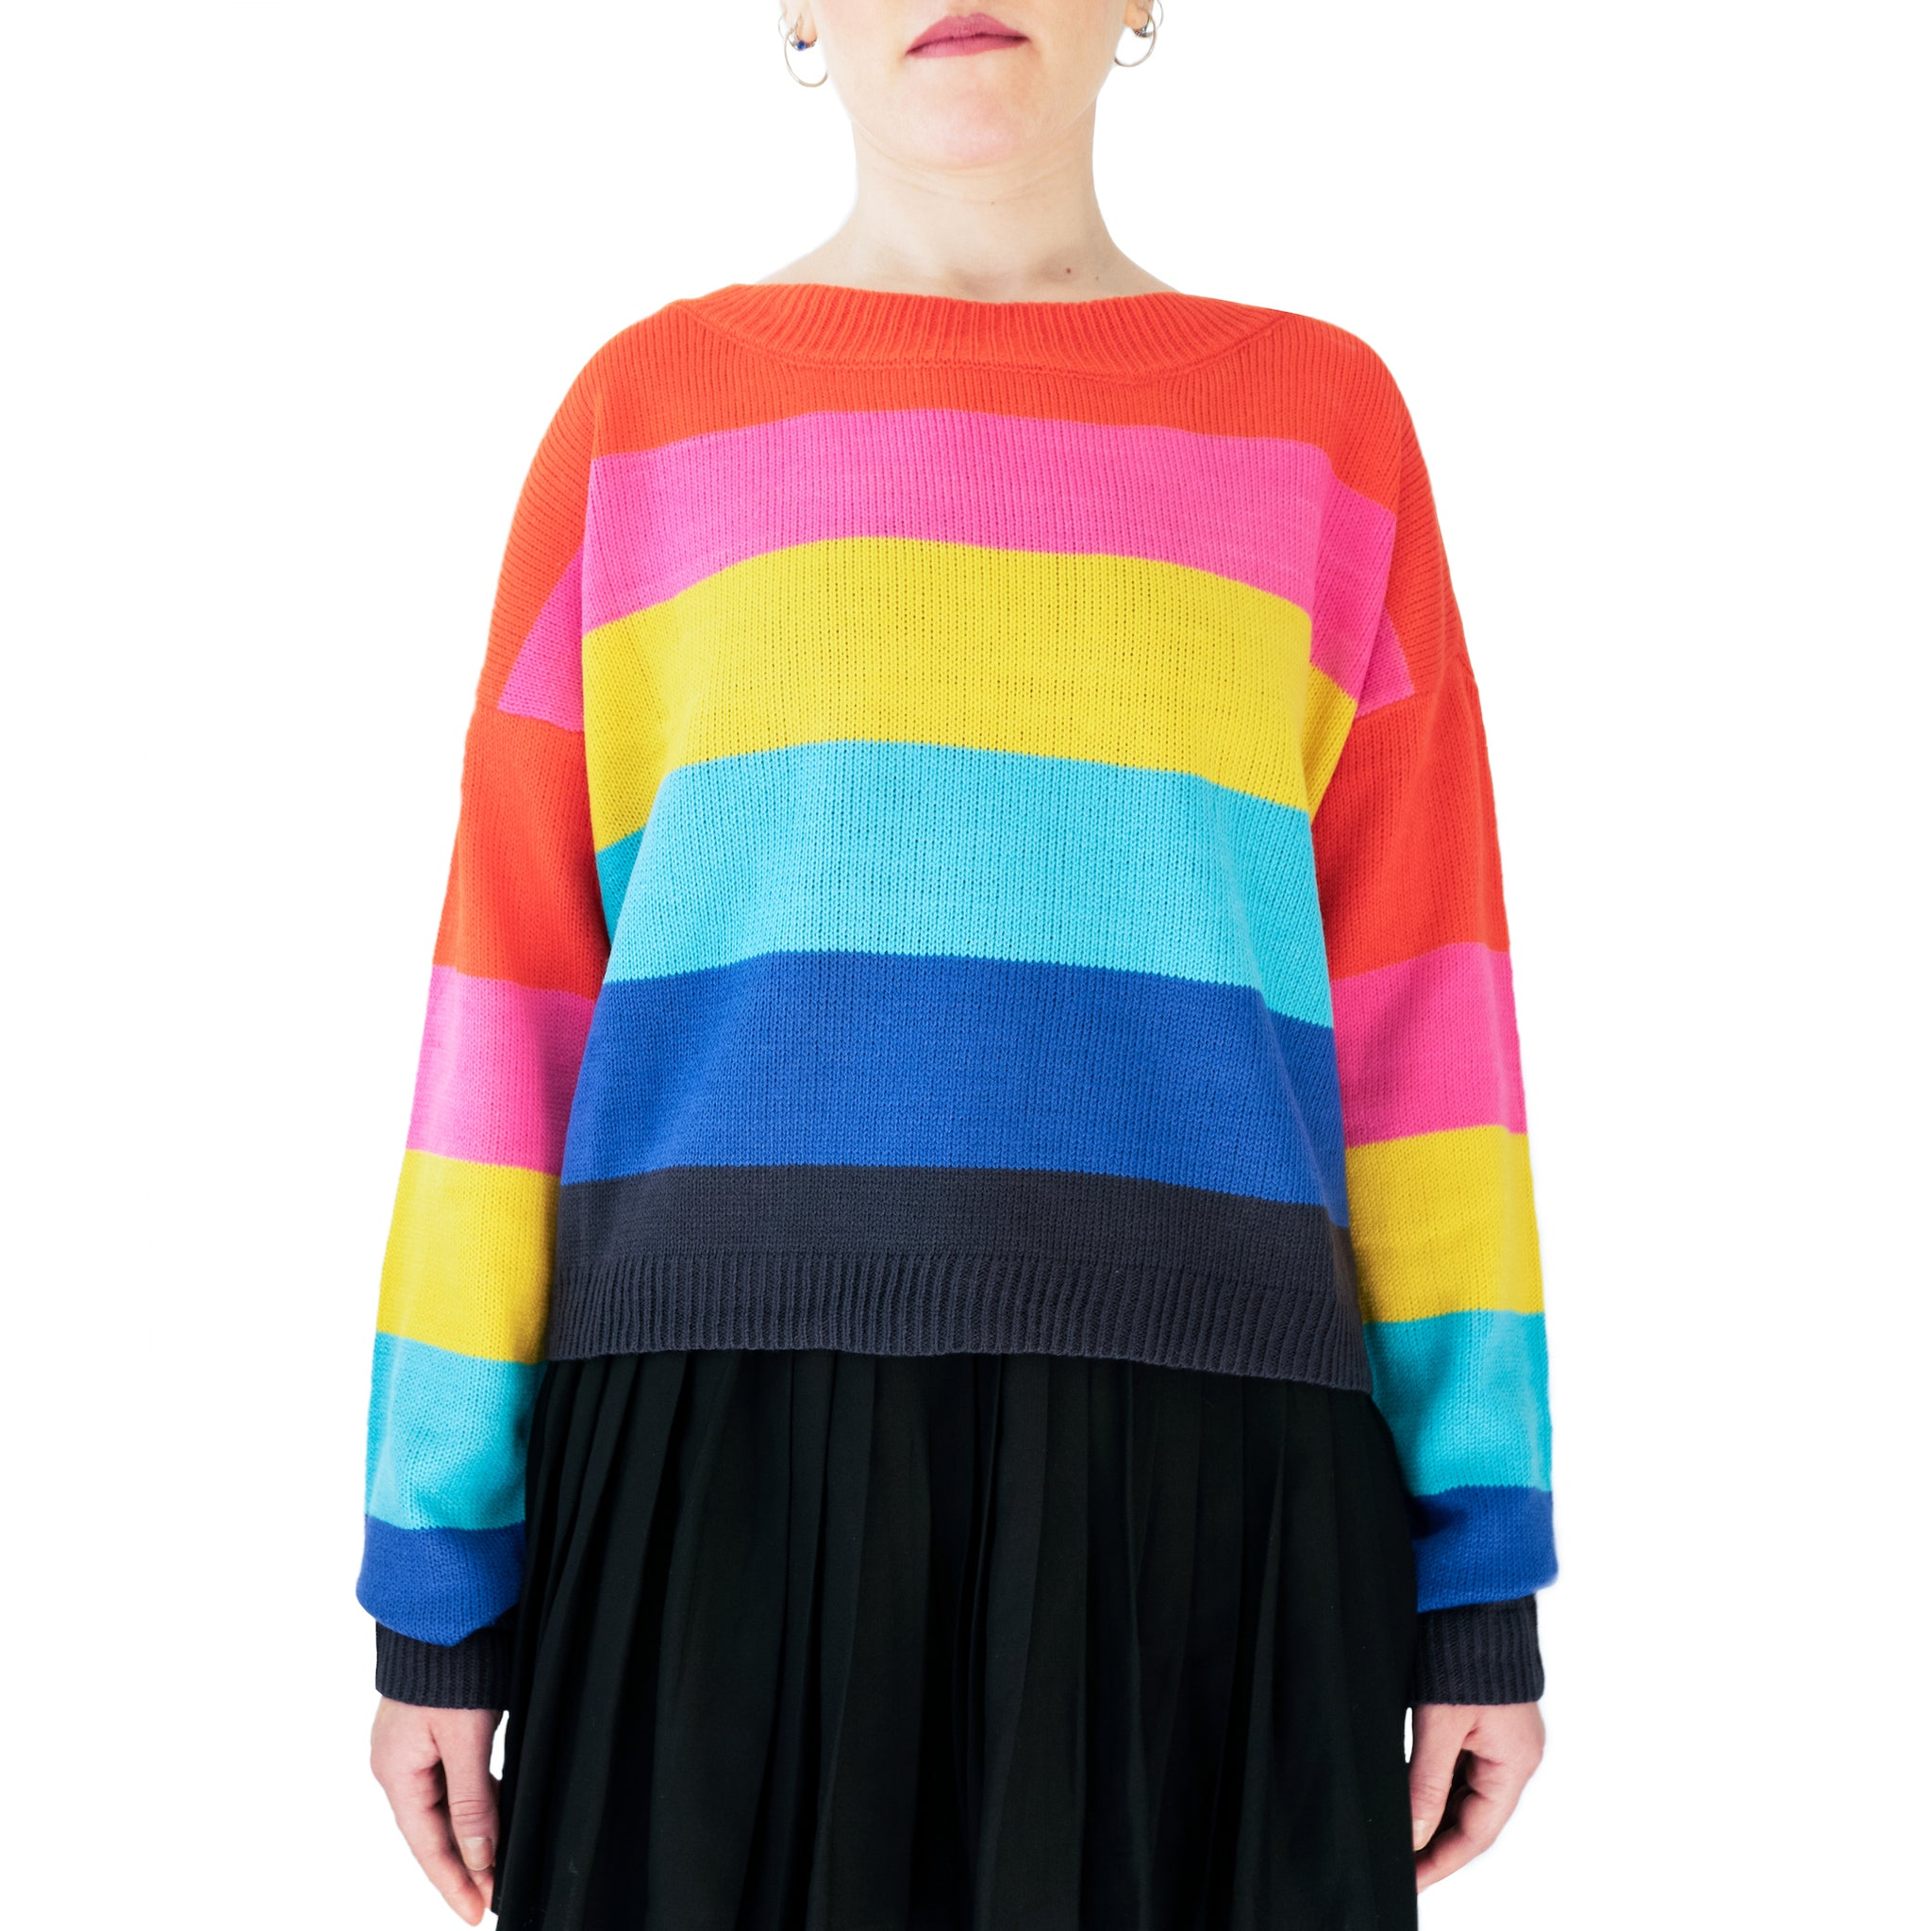 west carolina knitted rainbow jumper sweater